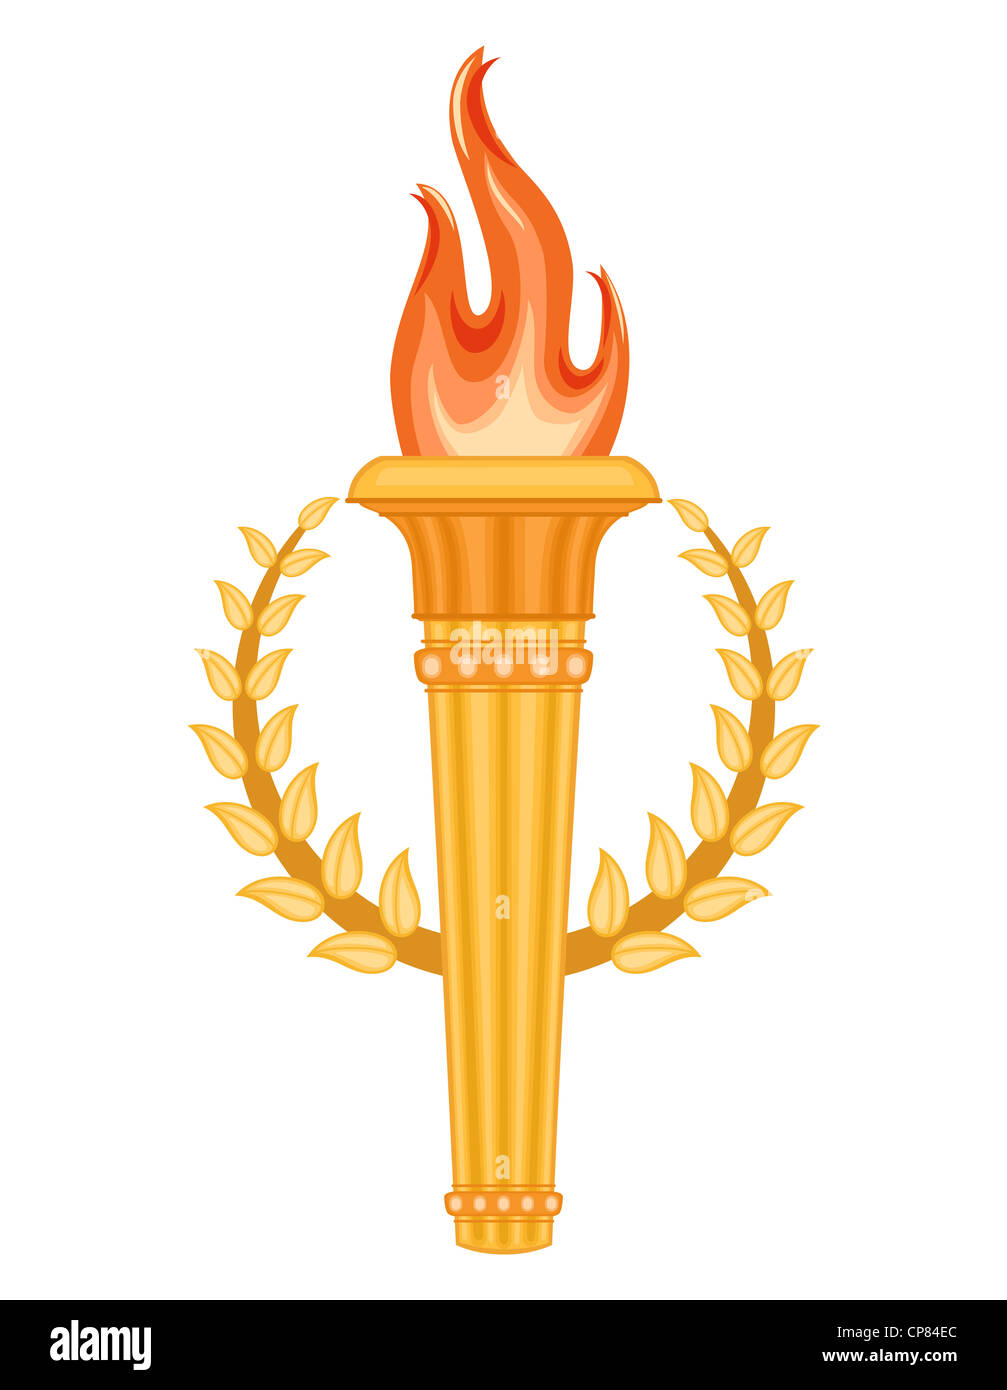 Greek olympic torch with golden crown of laurels olympics games greek olympic torch with golden crown of laurels olympics games symbol biocorpaavc Images